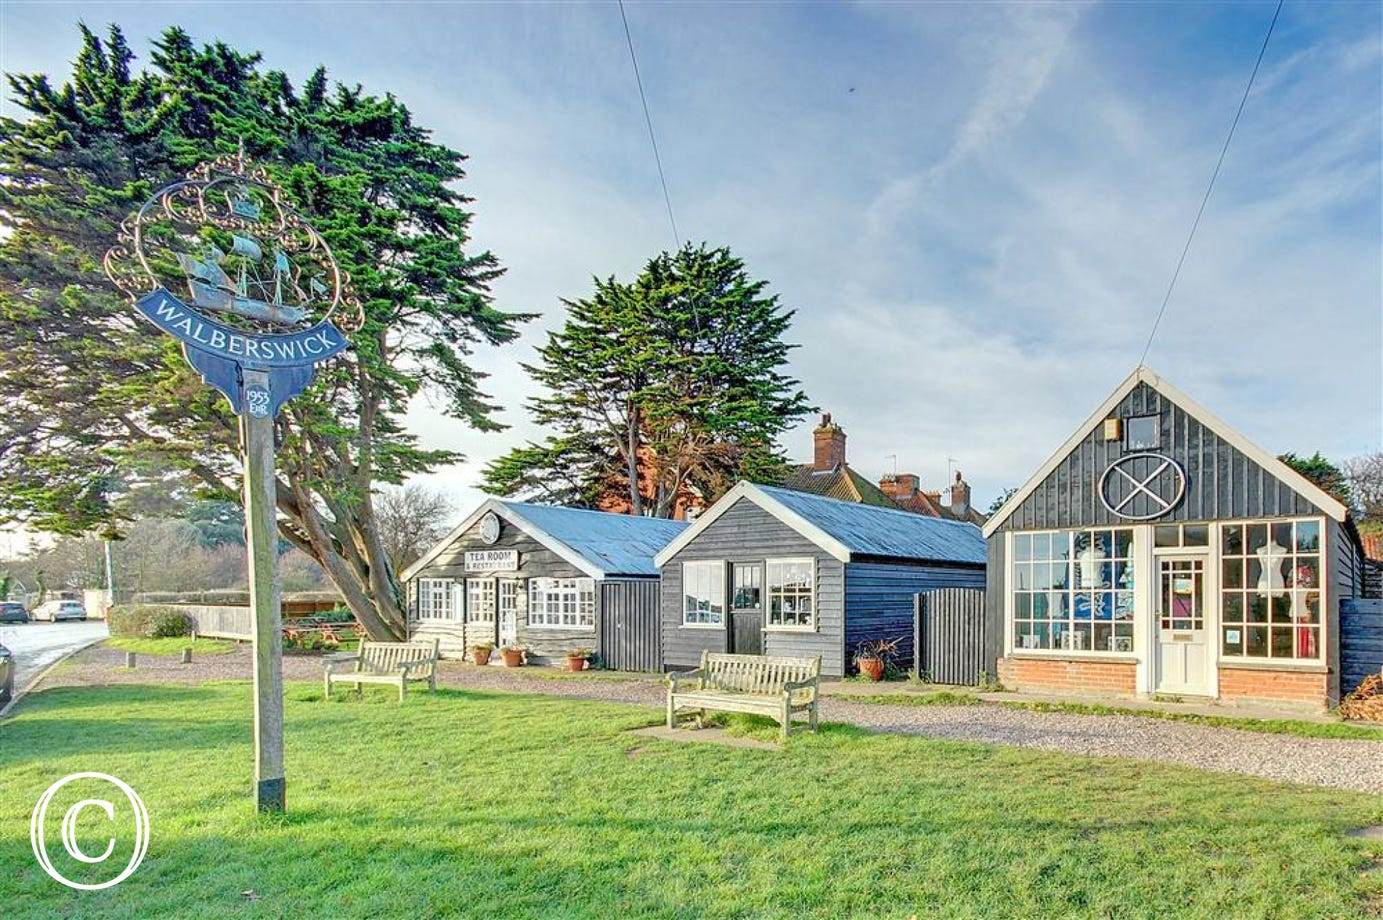 These quaint boutiques will allow you to get a little trinket of your stay in Walberswick.